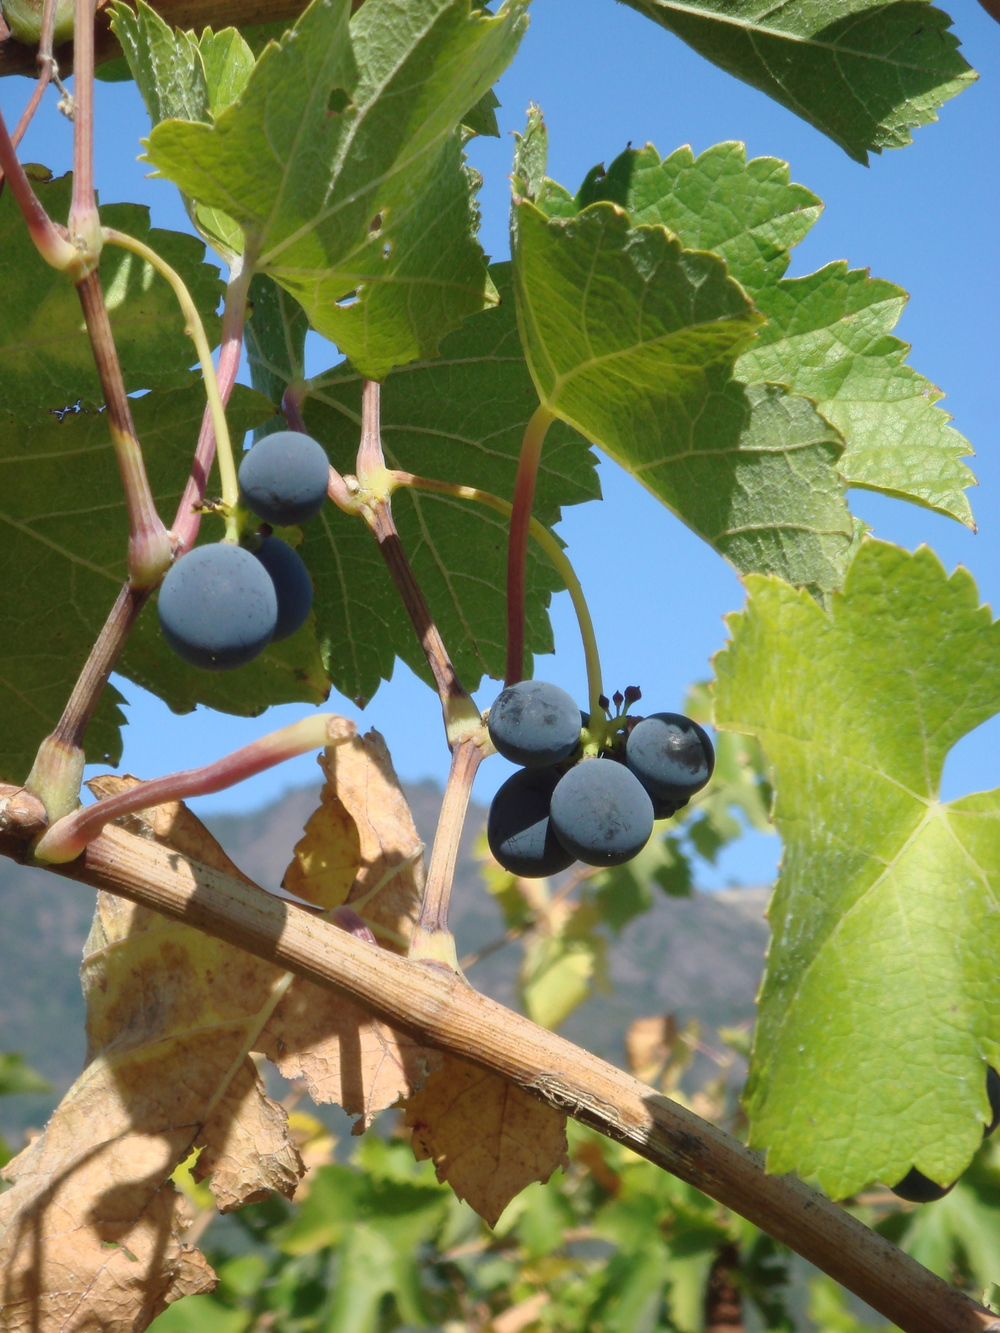 Grapes in a vineyard in Sonoma Valley, California